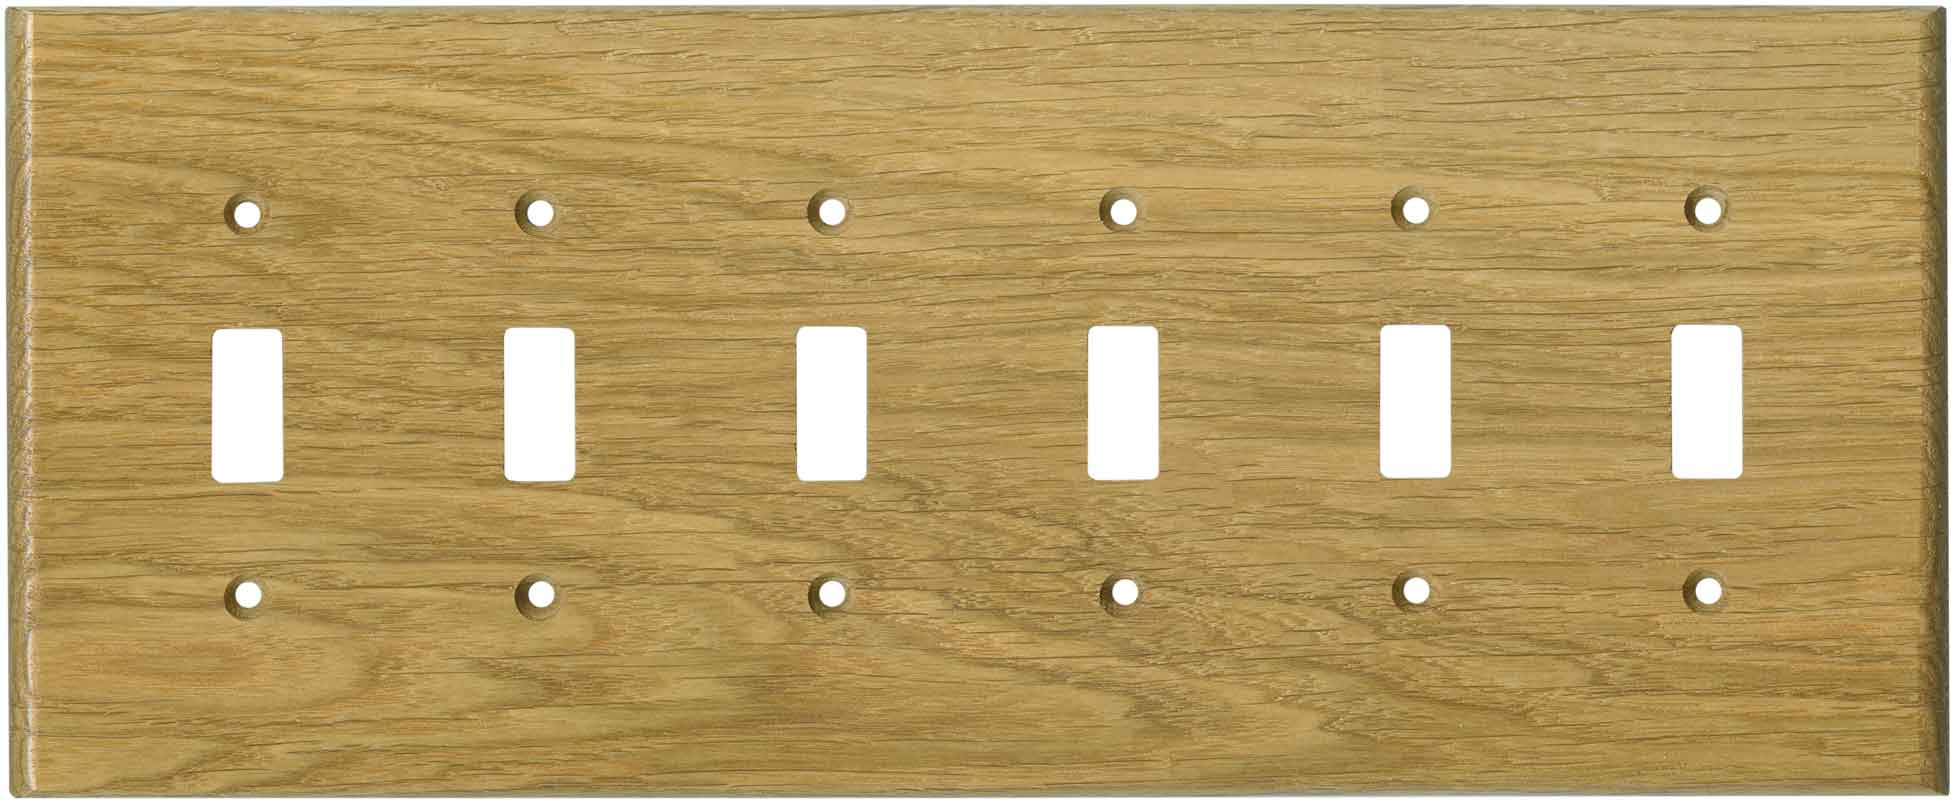 Oak White Satin Lacquer 6 Toggle Wall Plate Covers